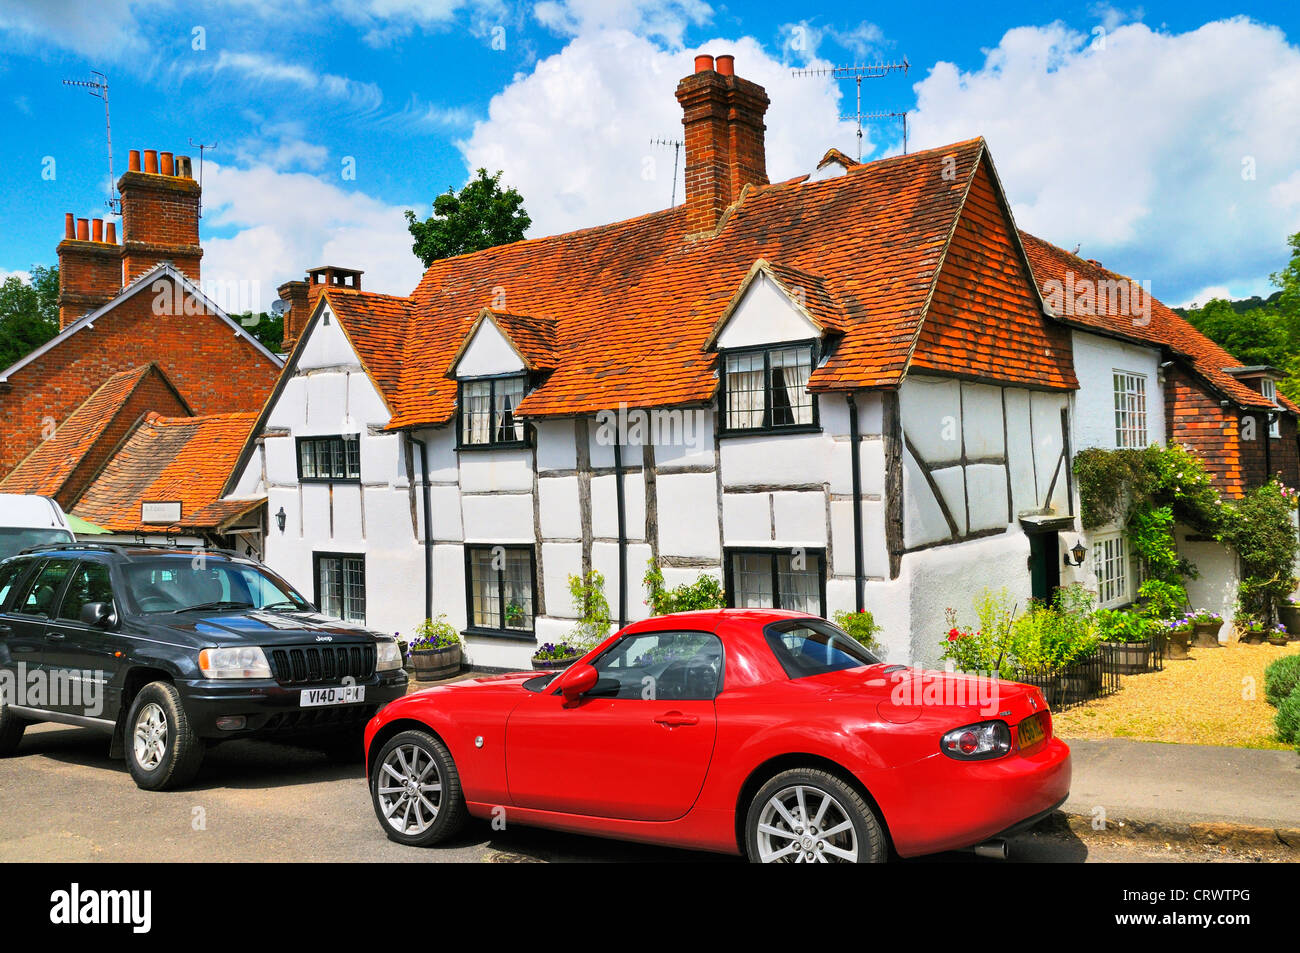 Cottages in the picturesque village of Shere in Surrey, England, UK - Stock Image